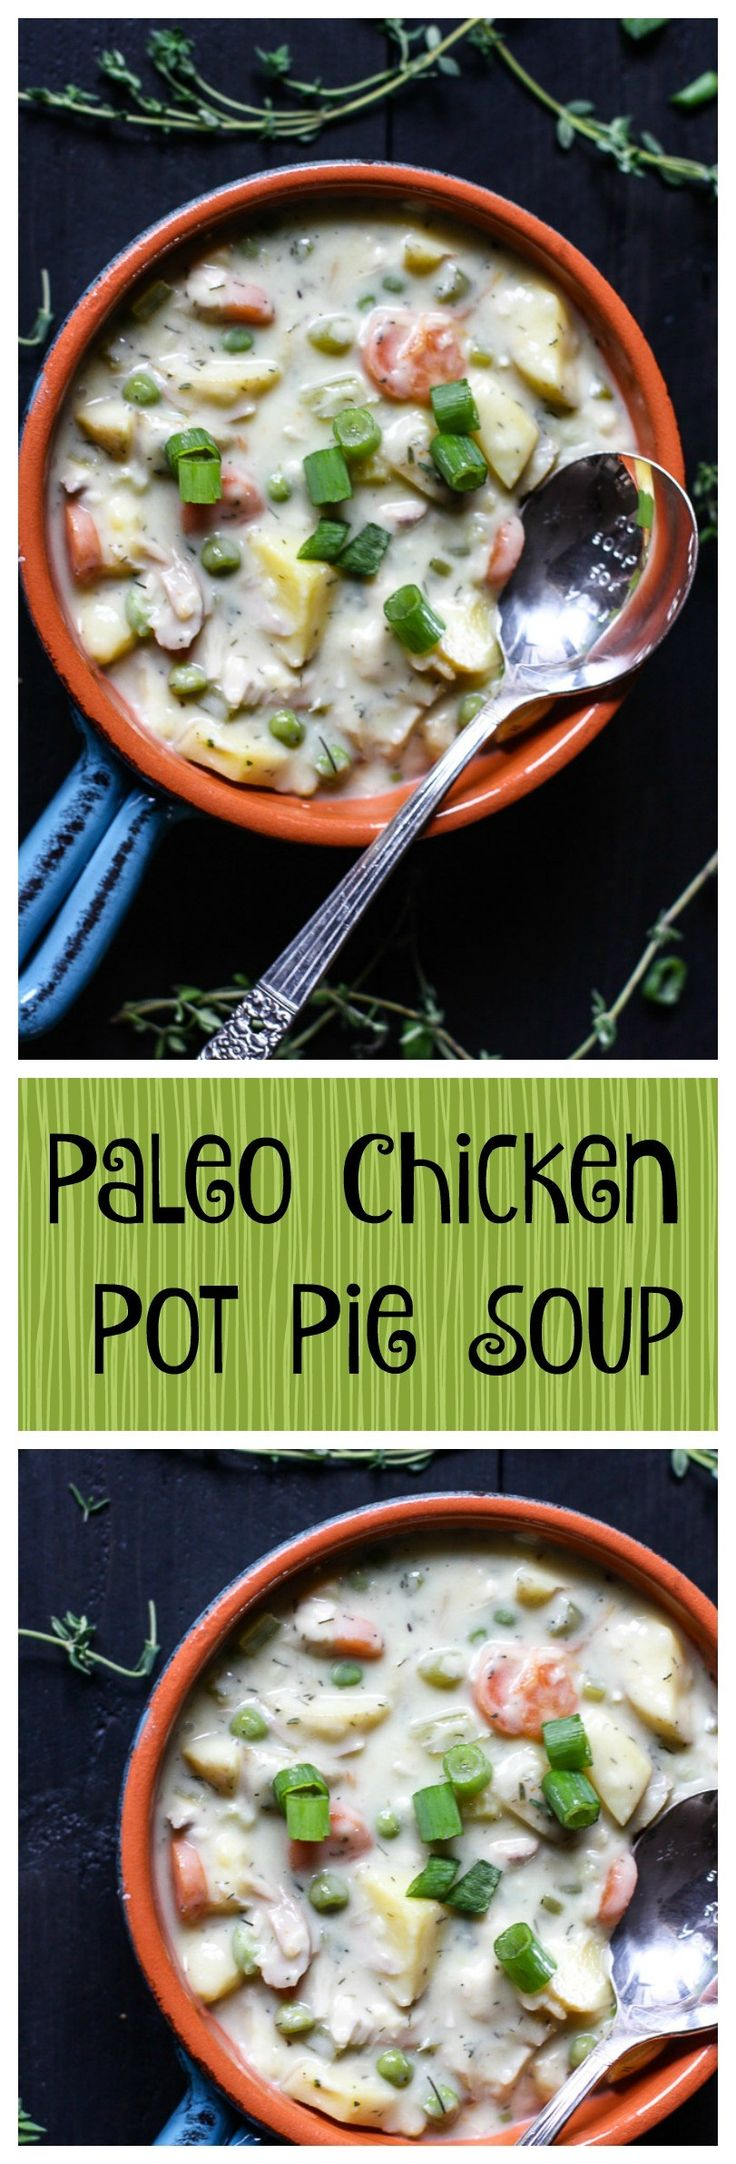 Paleo Chicken Pot Pie Soup. All the tastes of comforting pot pie, but no grains and no dairy. This simple recipe is delicious and healing!